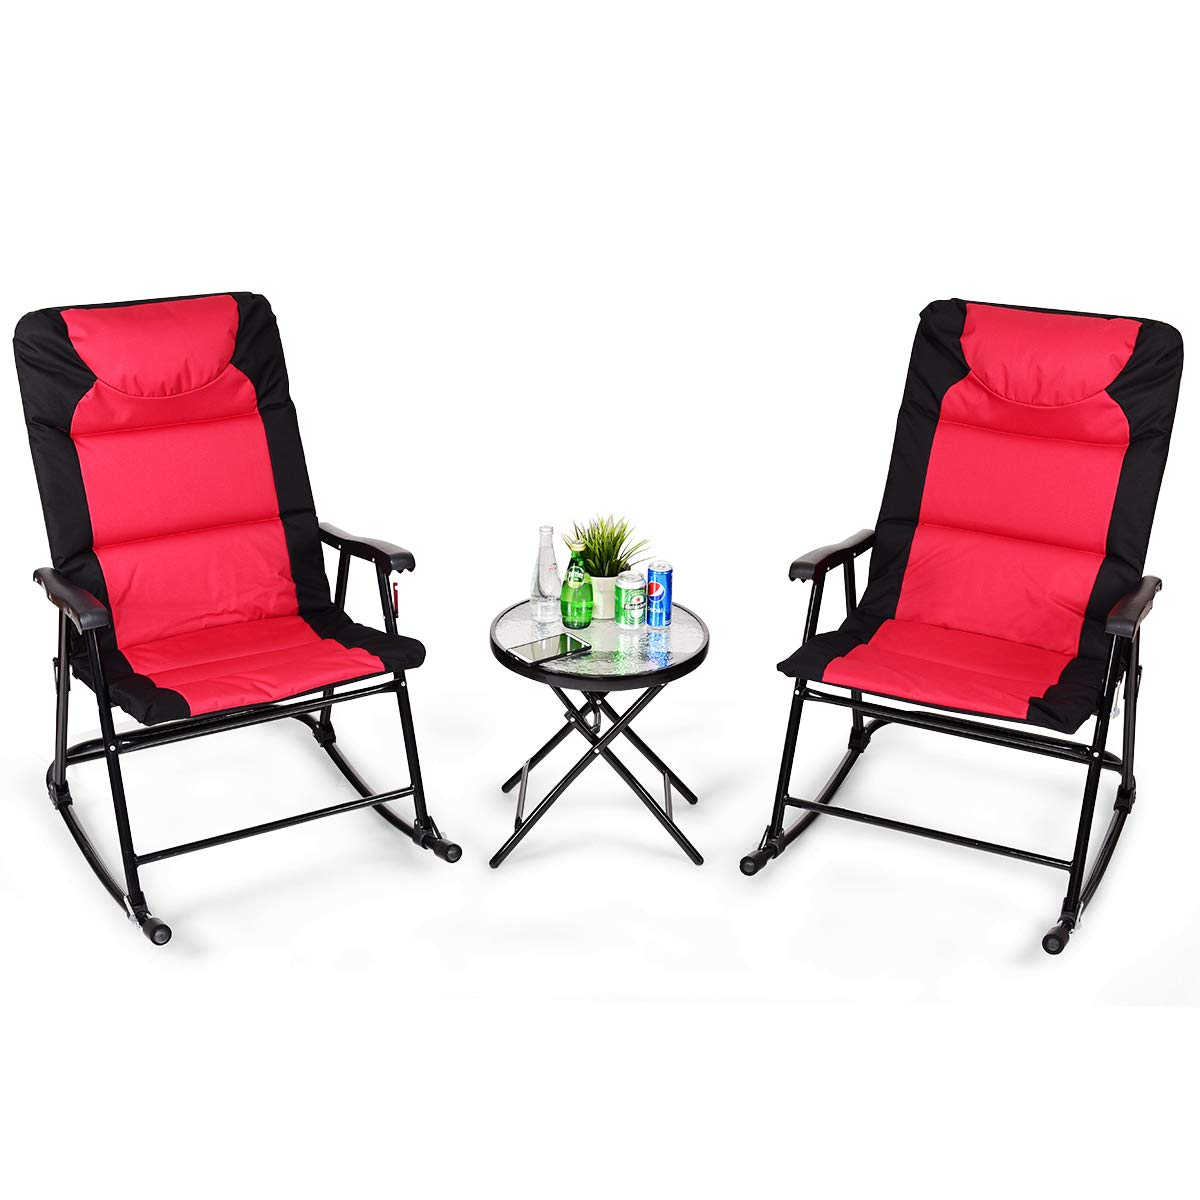 Giantex 3 PCS Folding Bistro Set Outdoor Patio Rocking Chairs Round Table Set 2 Rocking Chairs w/Glass Coffee Table for Yard, Patio, Deck, Backyard Padded Seat, Red & Black